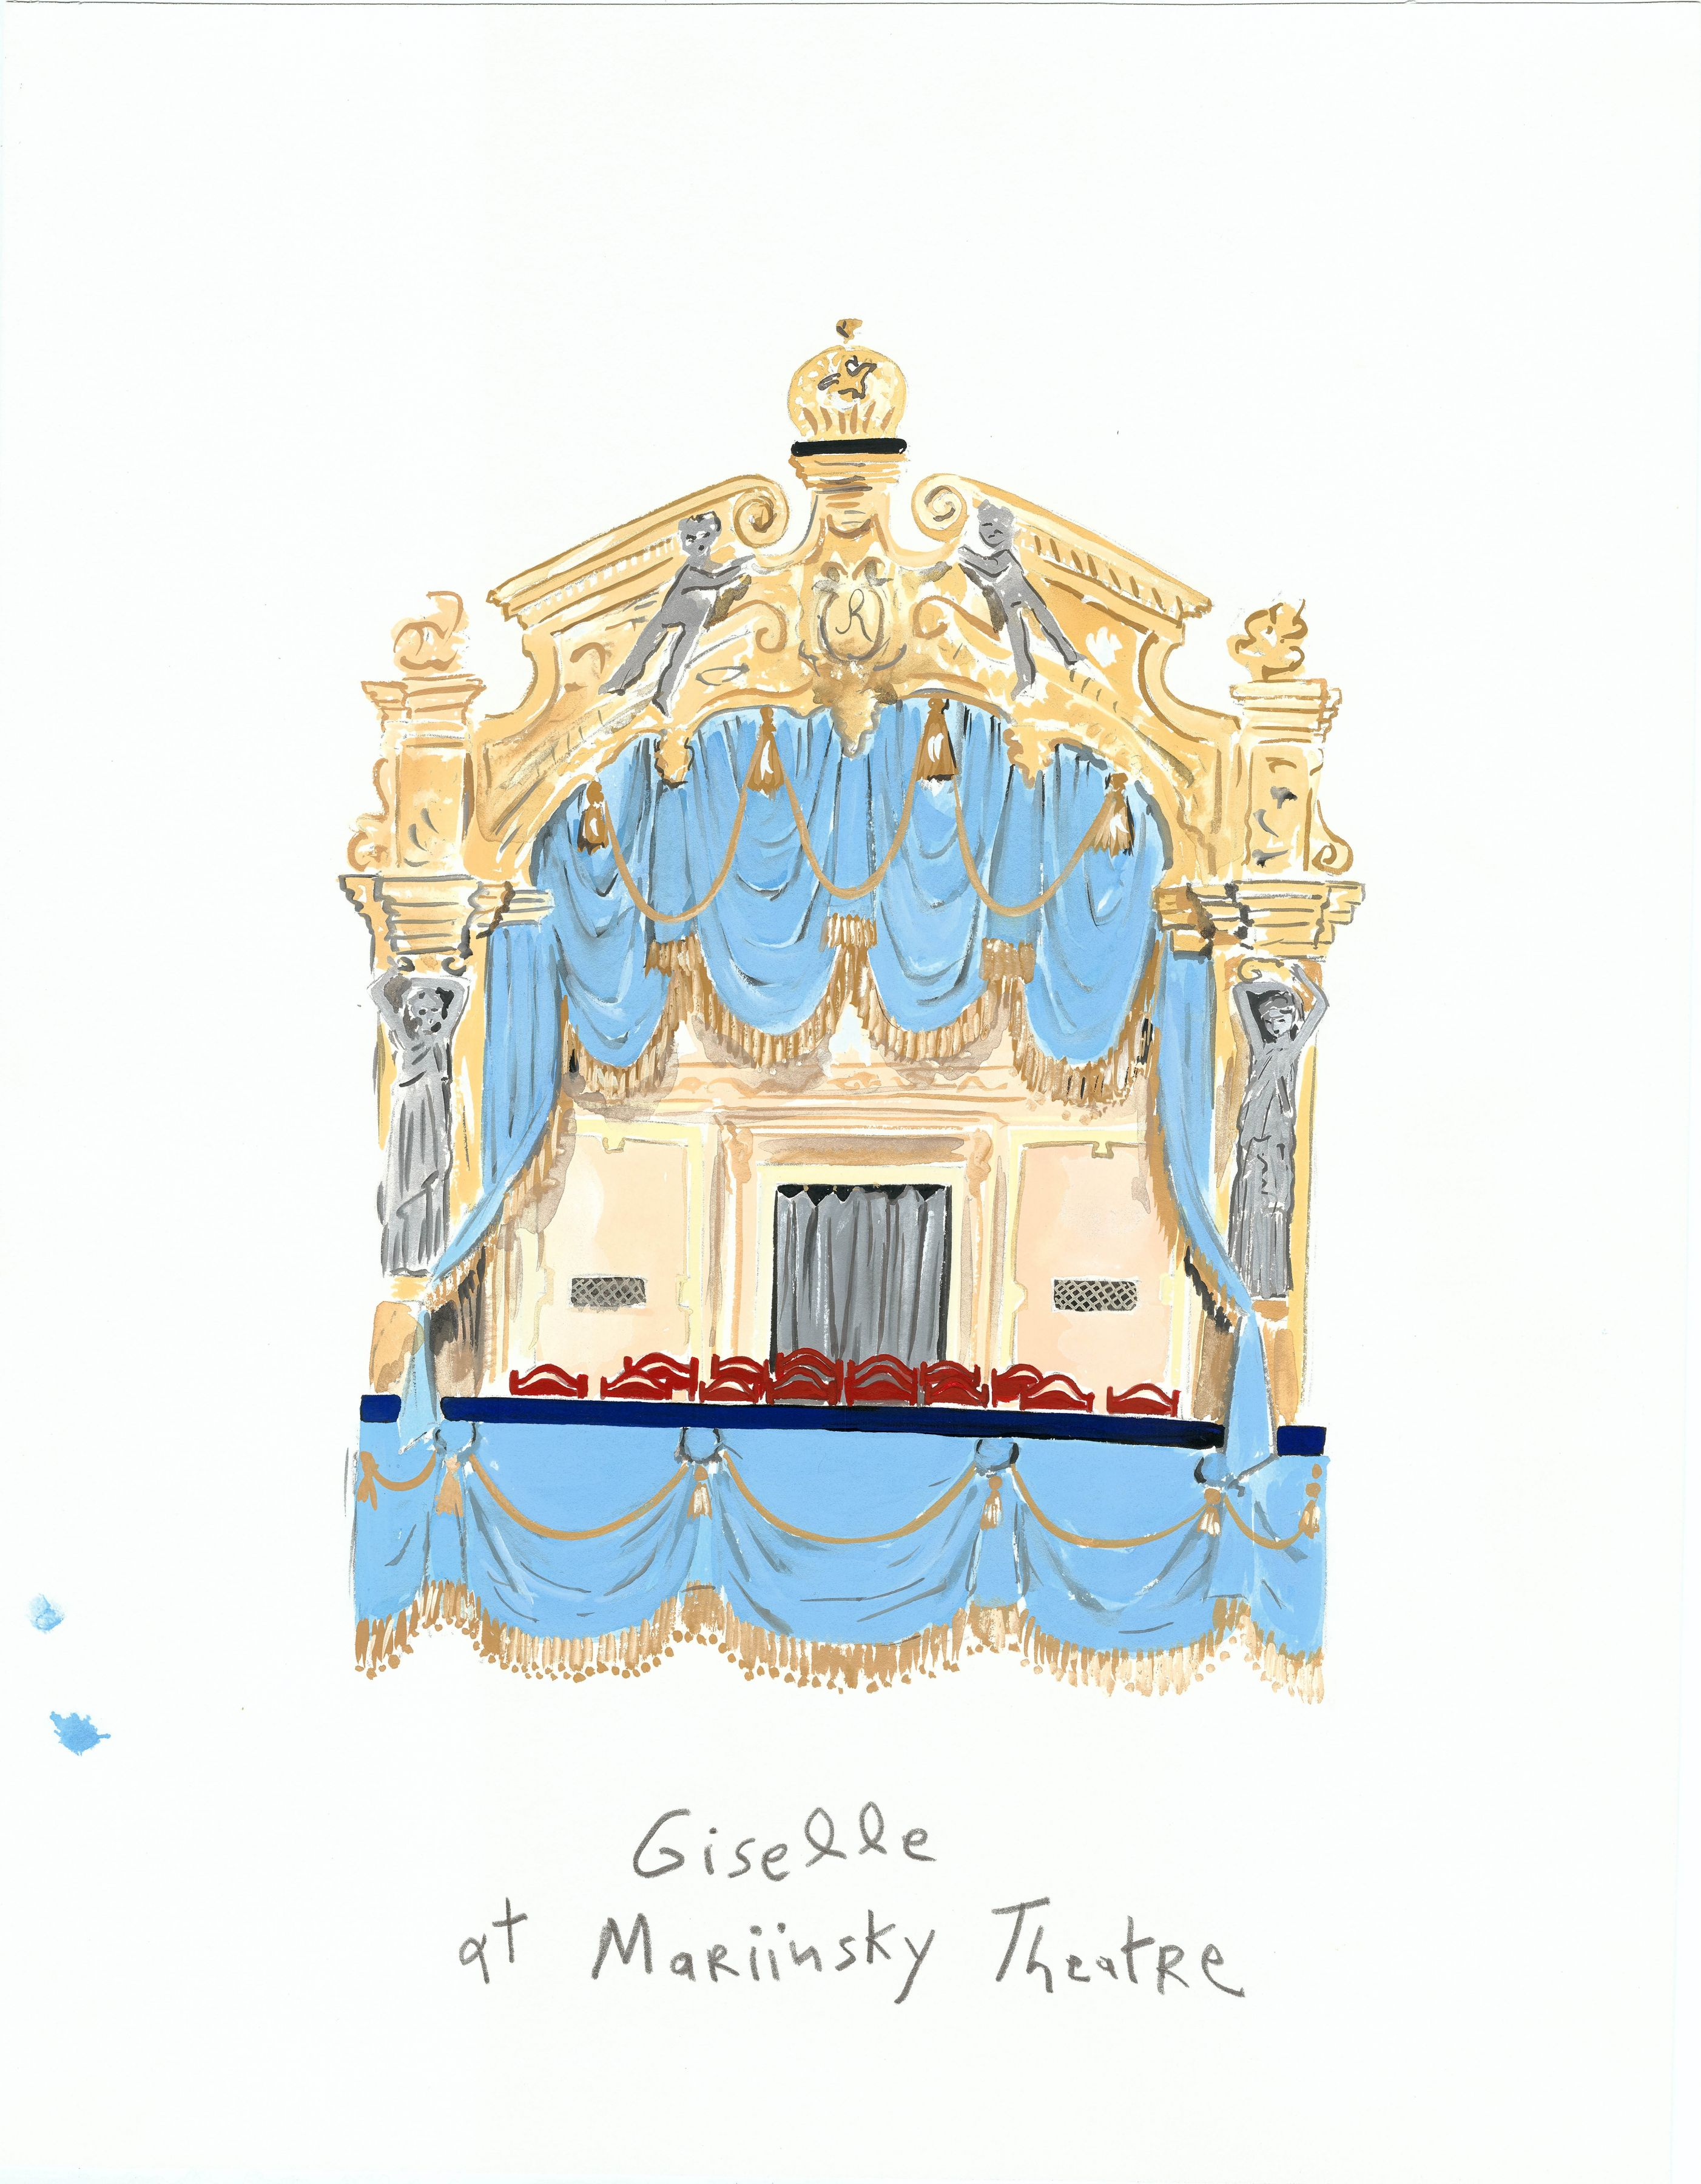 Cultural Capital (Mariinsky Theatre), 2013, Gouache on paper